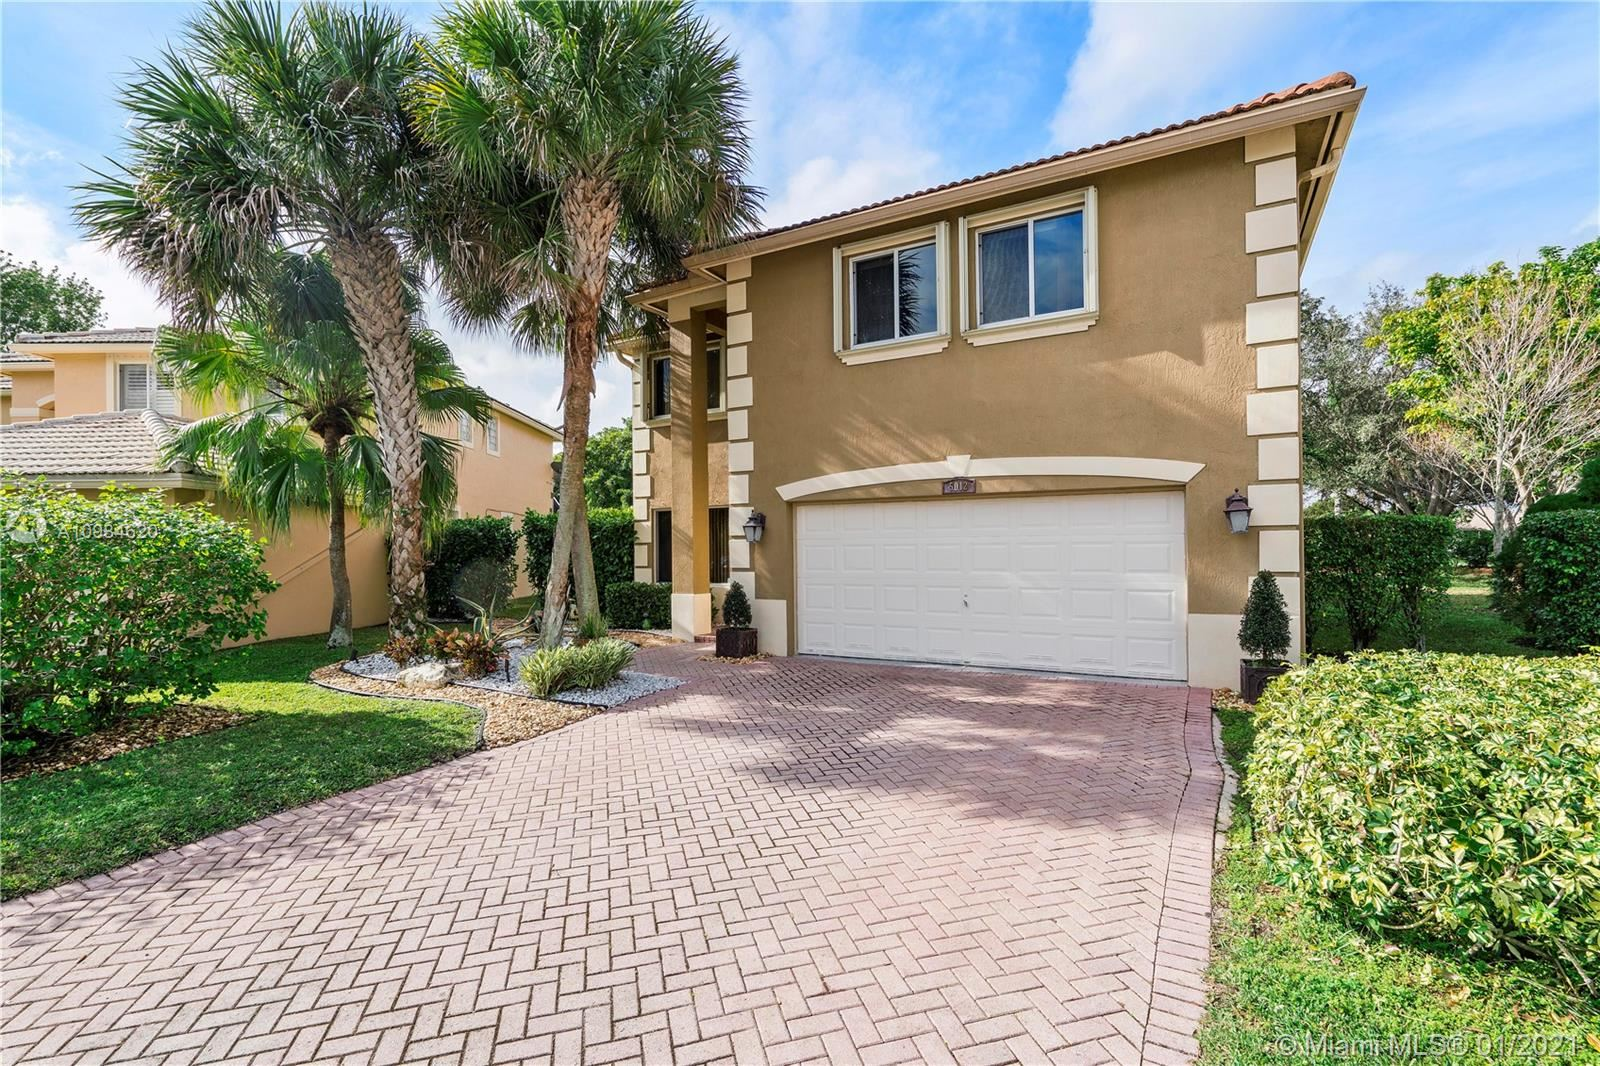 5012 NW 122nd Ave, Coral Springs, FL 33076 - #: A10984620